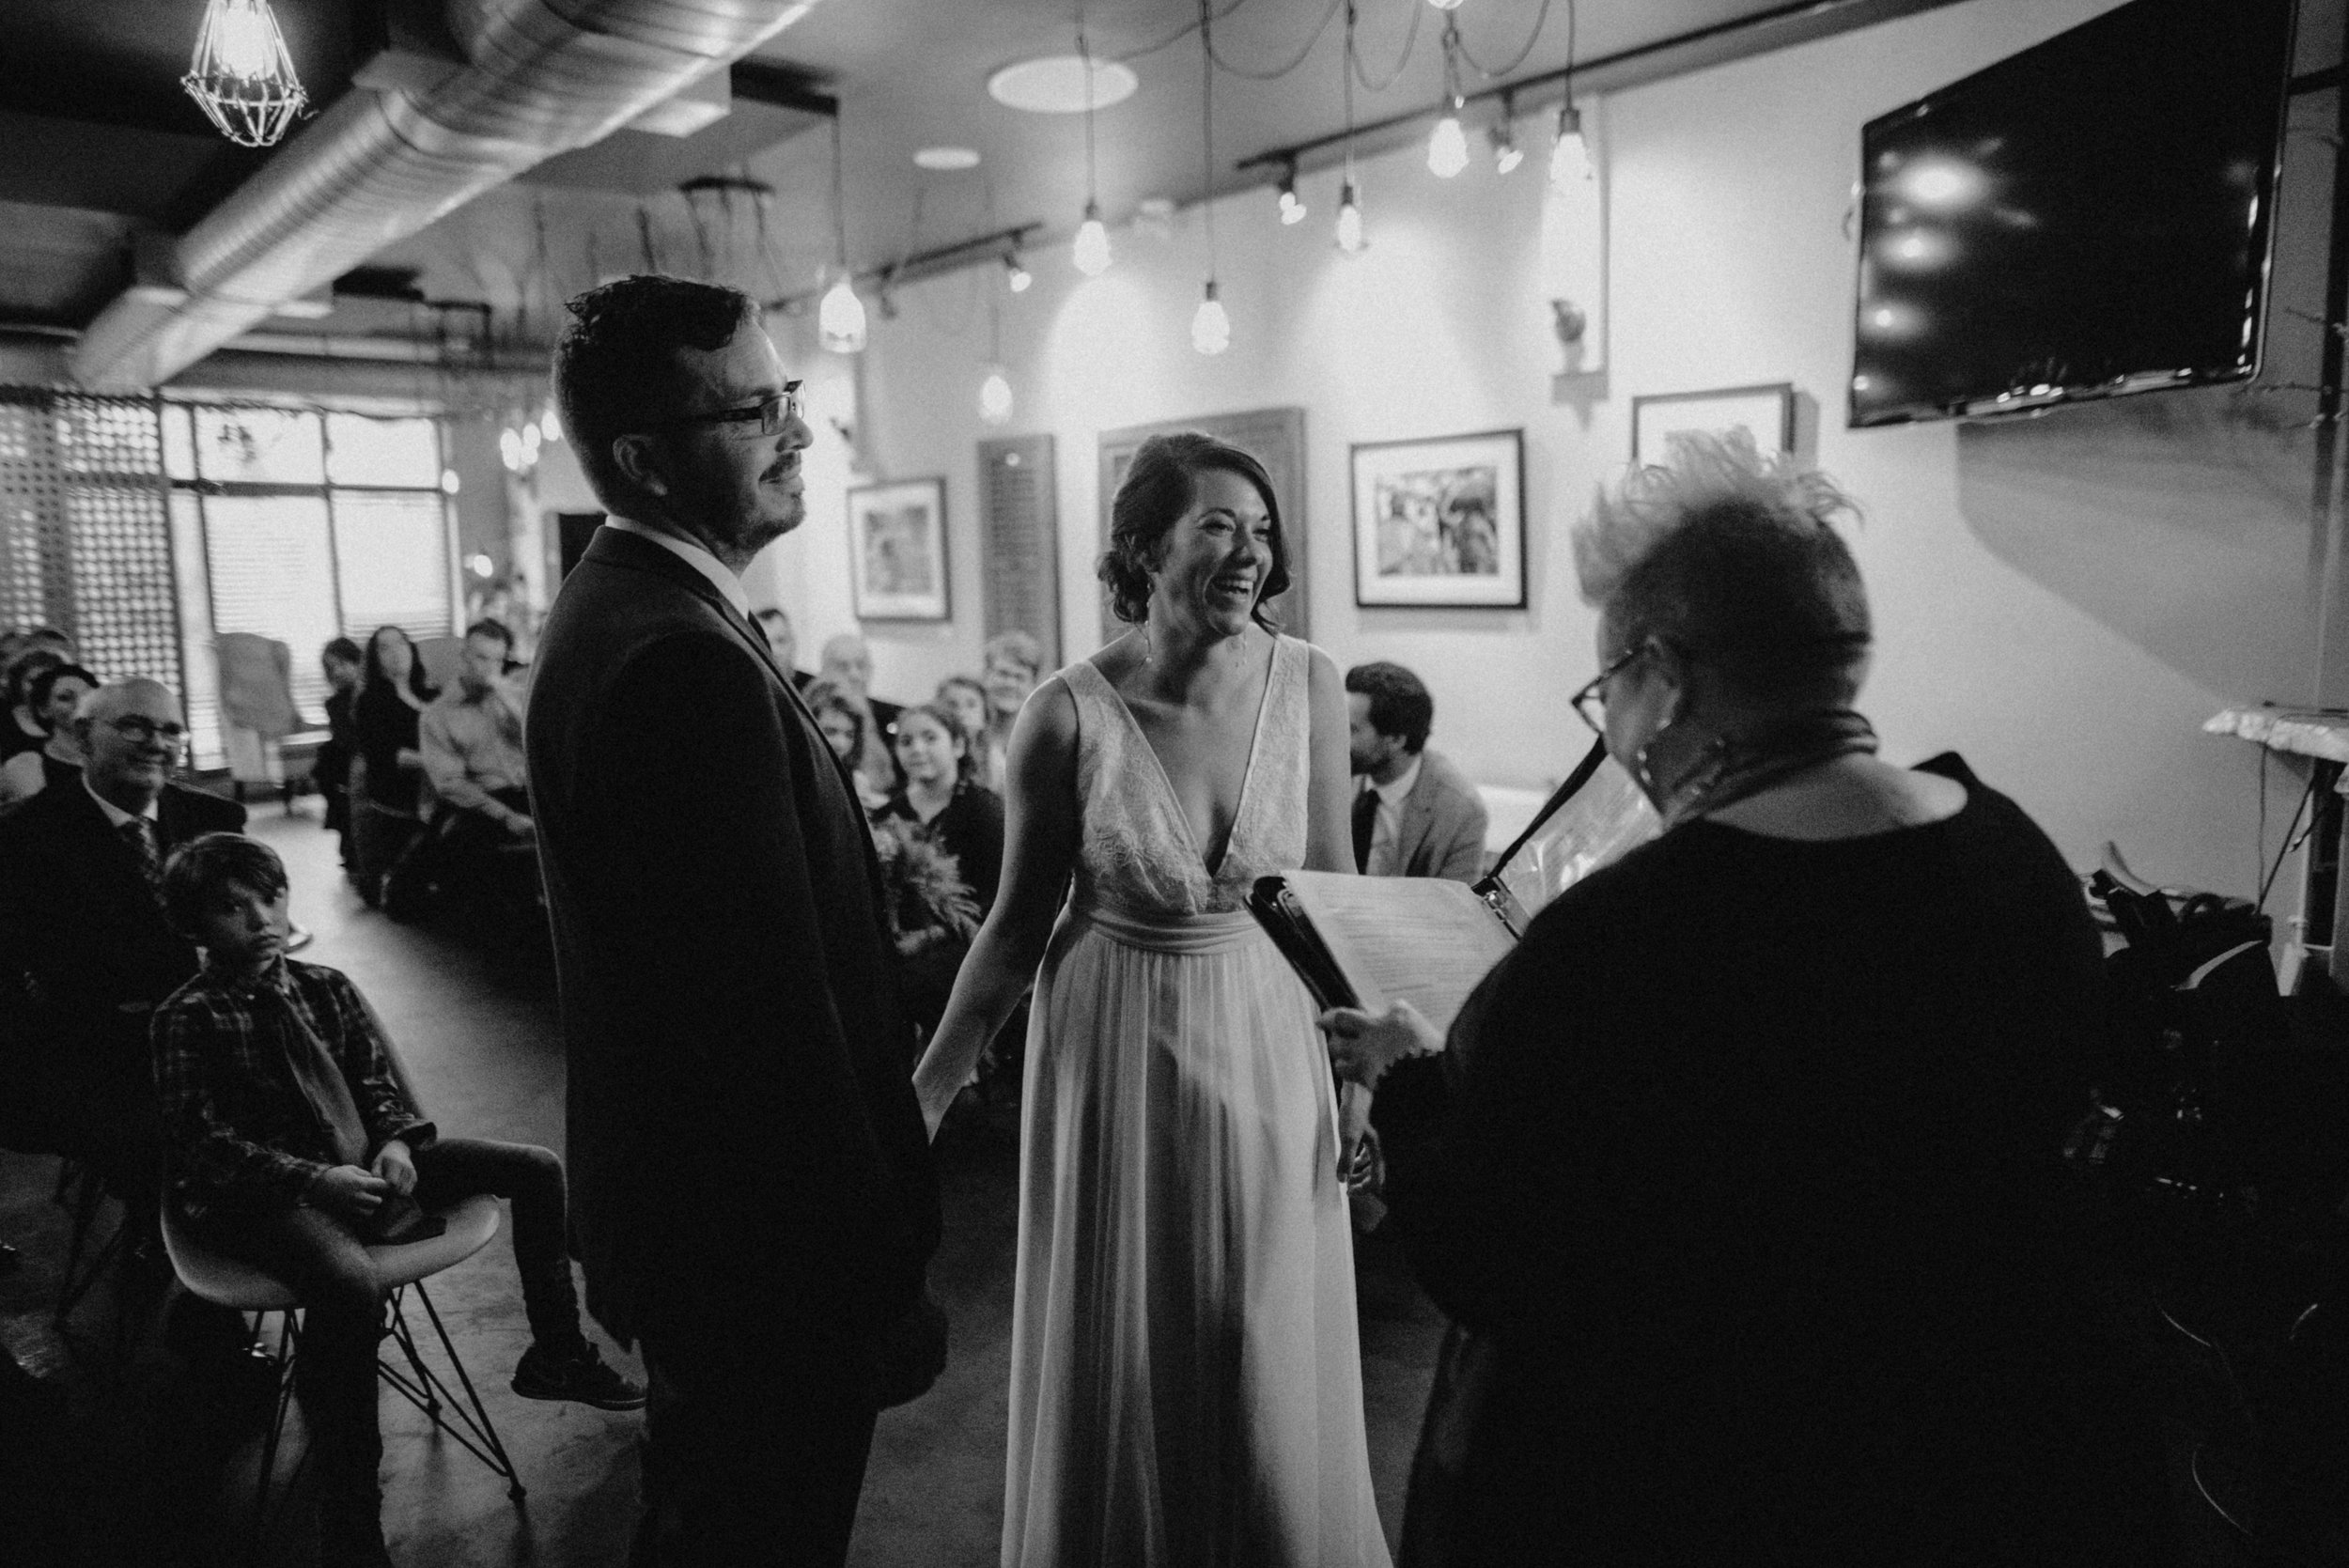 photographe_gatineau_mariage_ottawa_photographer_wedding_natasha_liard_photo_documentary_candid_lifestyle_table40 (11).jpg